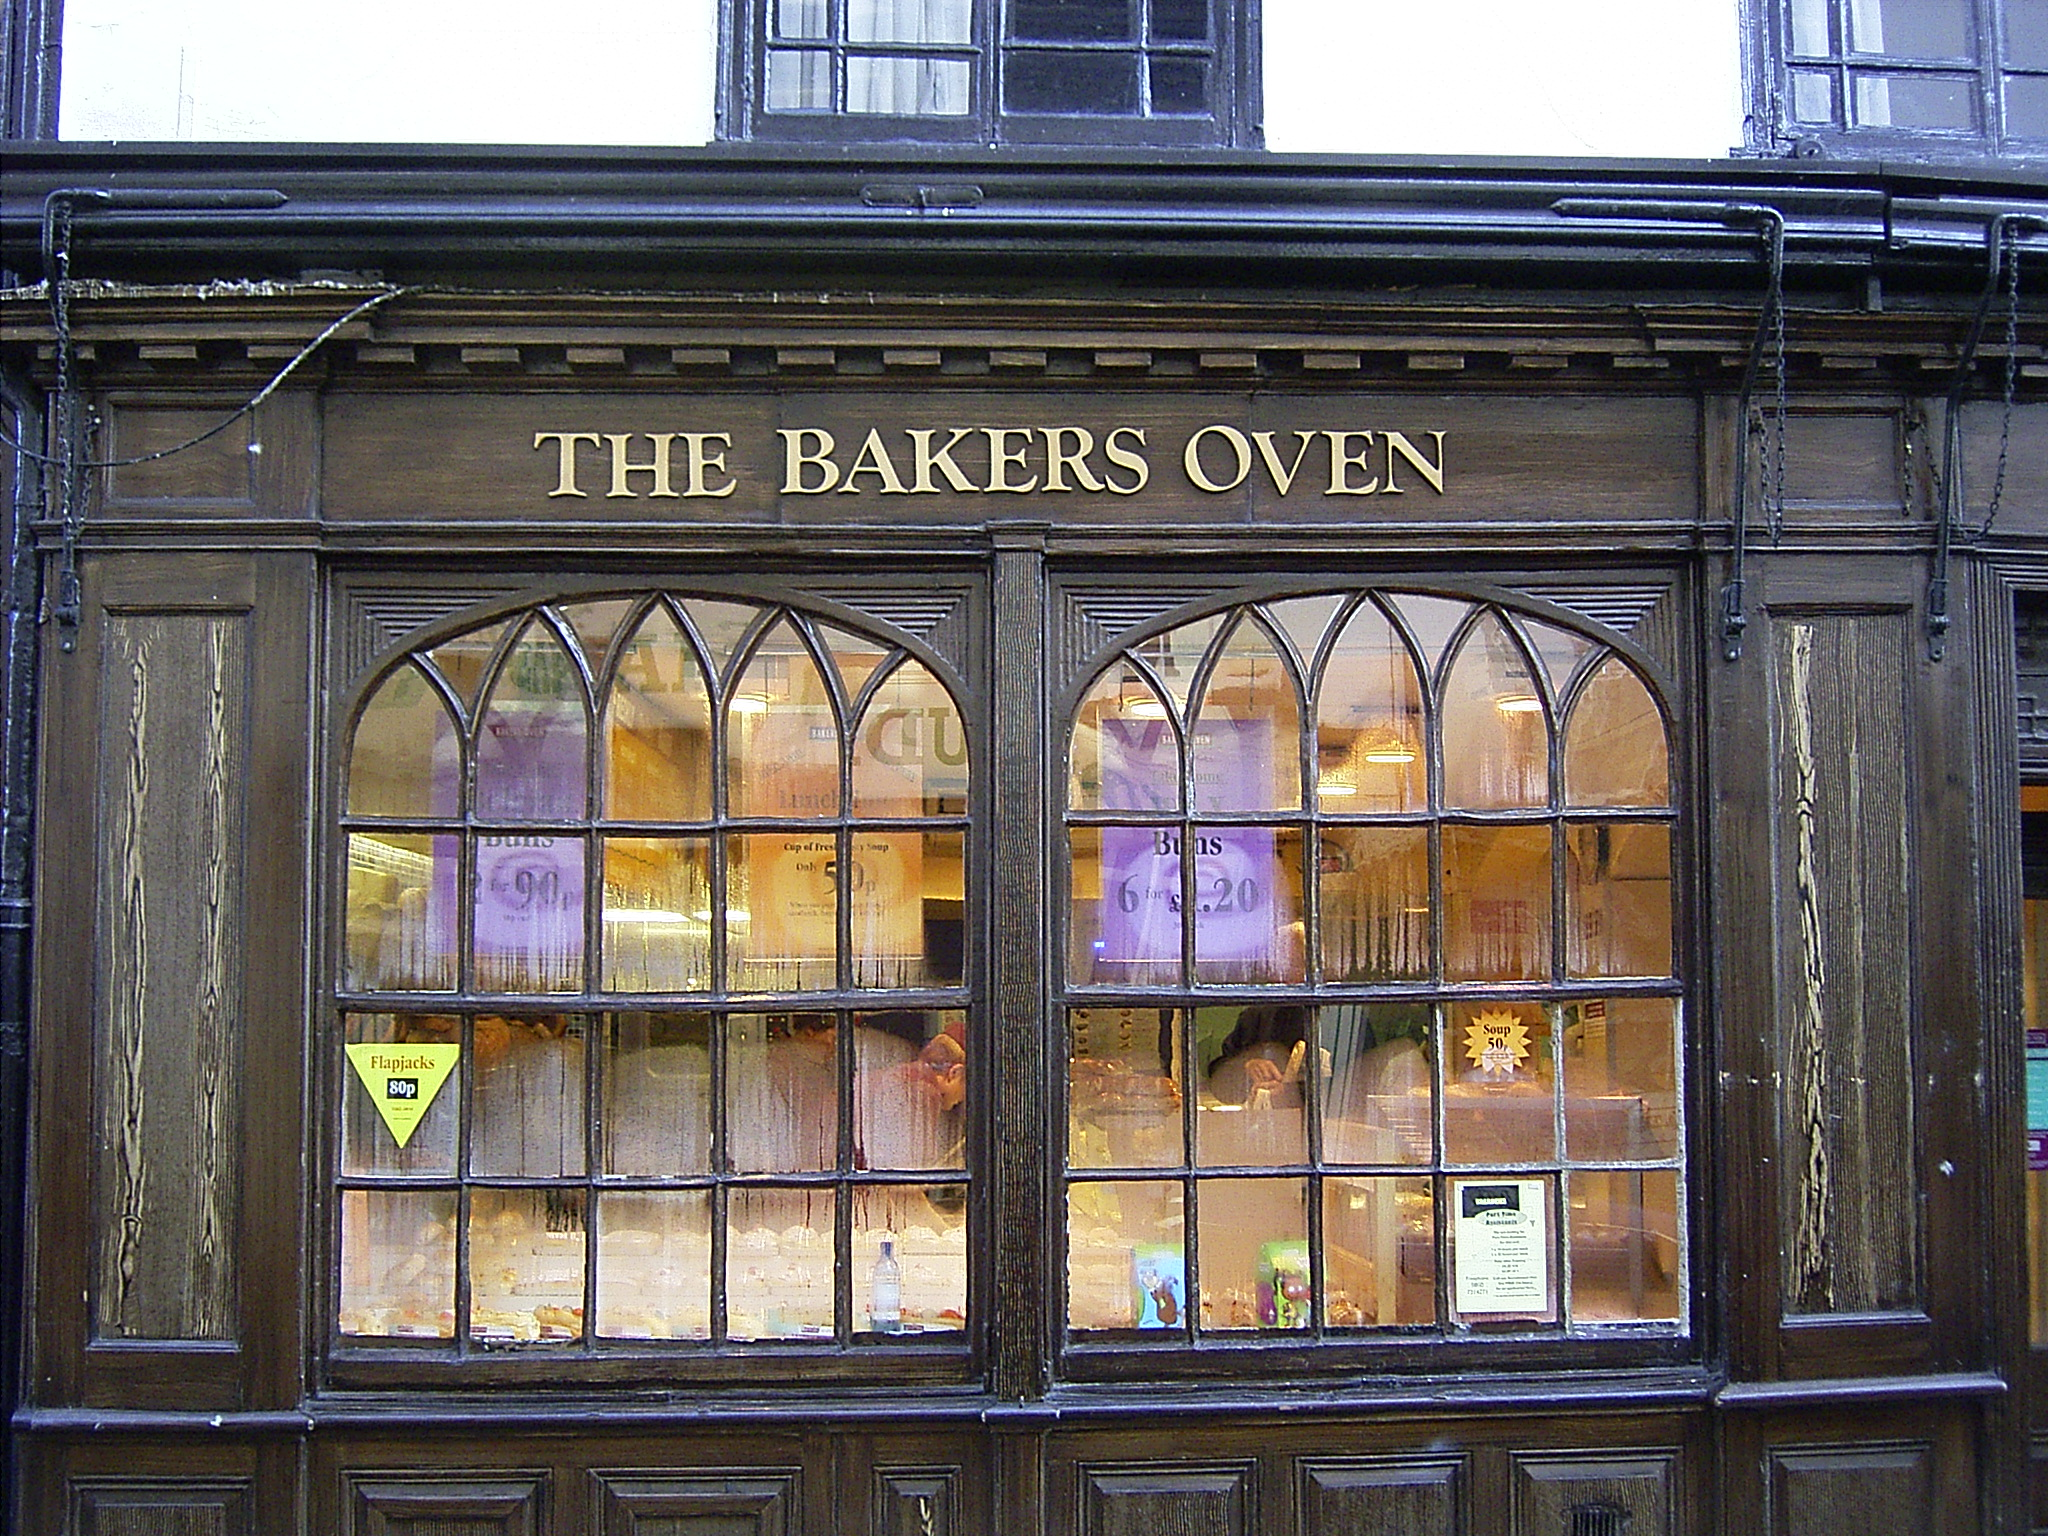 Bakers shop in Bury St Edmunds, Suffolk, pictured summer 2004